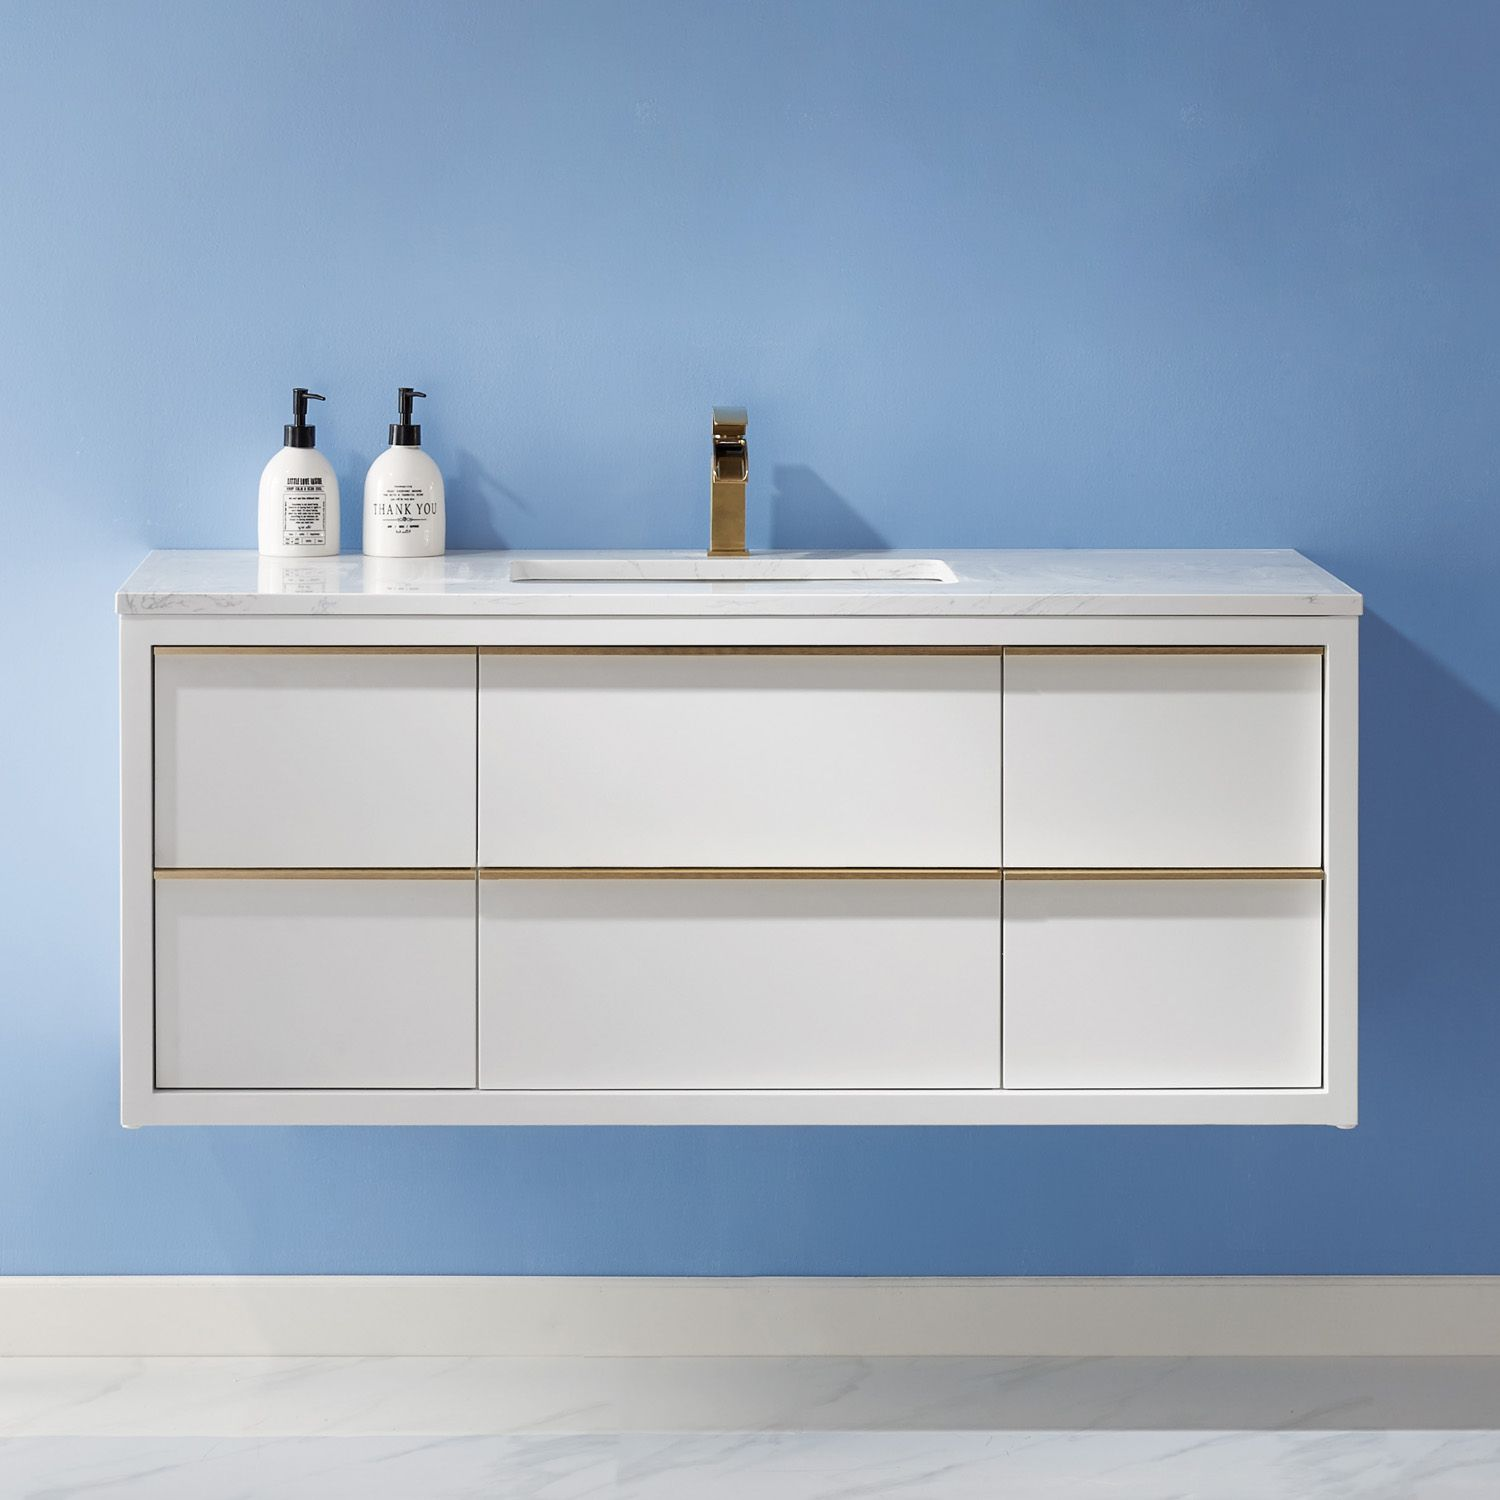 "Issac Edwards Collection 48"" Single Bathroom Vanity Set in White and Composite Carrara White Stone Countertop without Mirror"